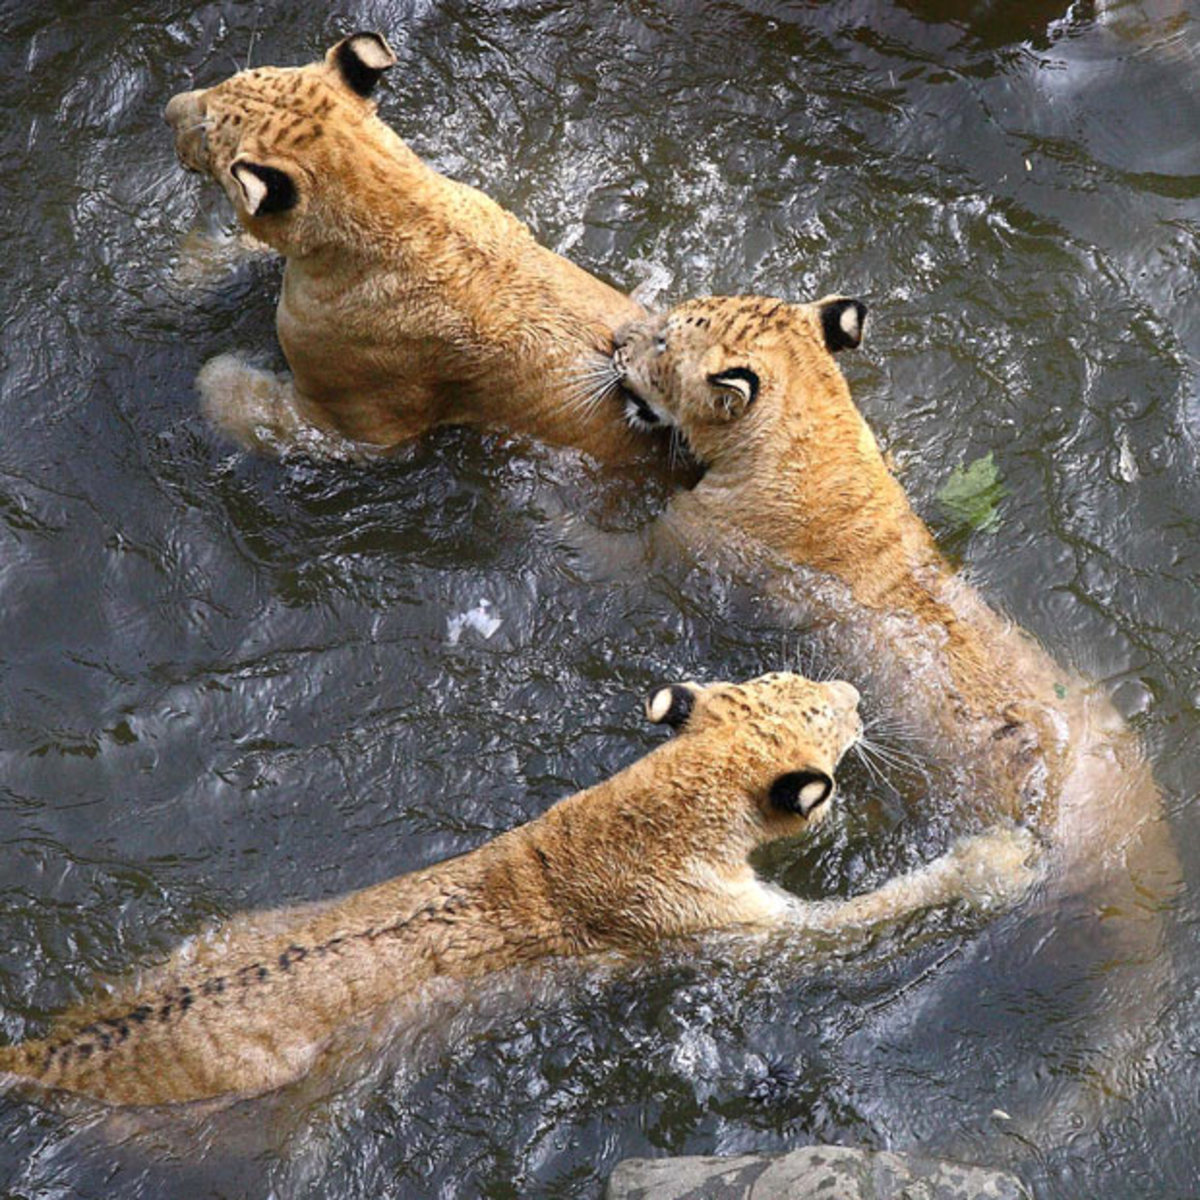 Liger cubs playing in the water.